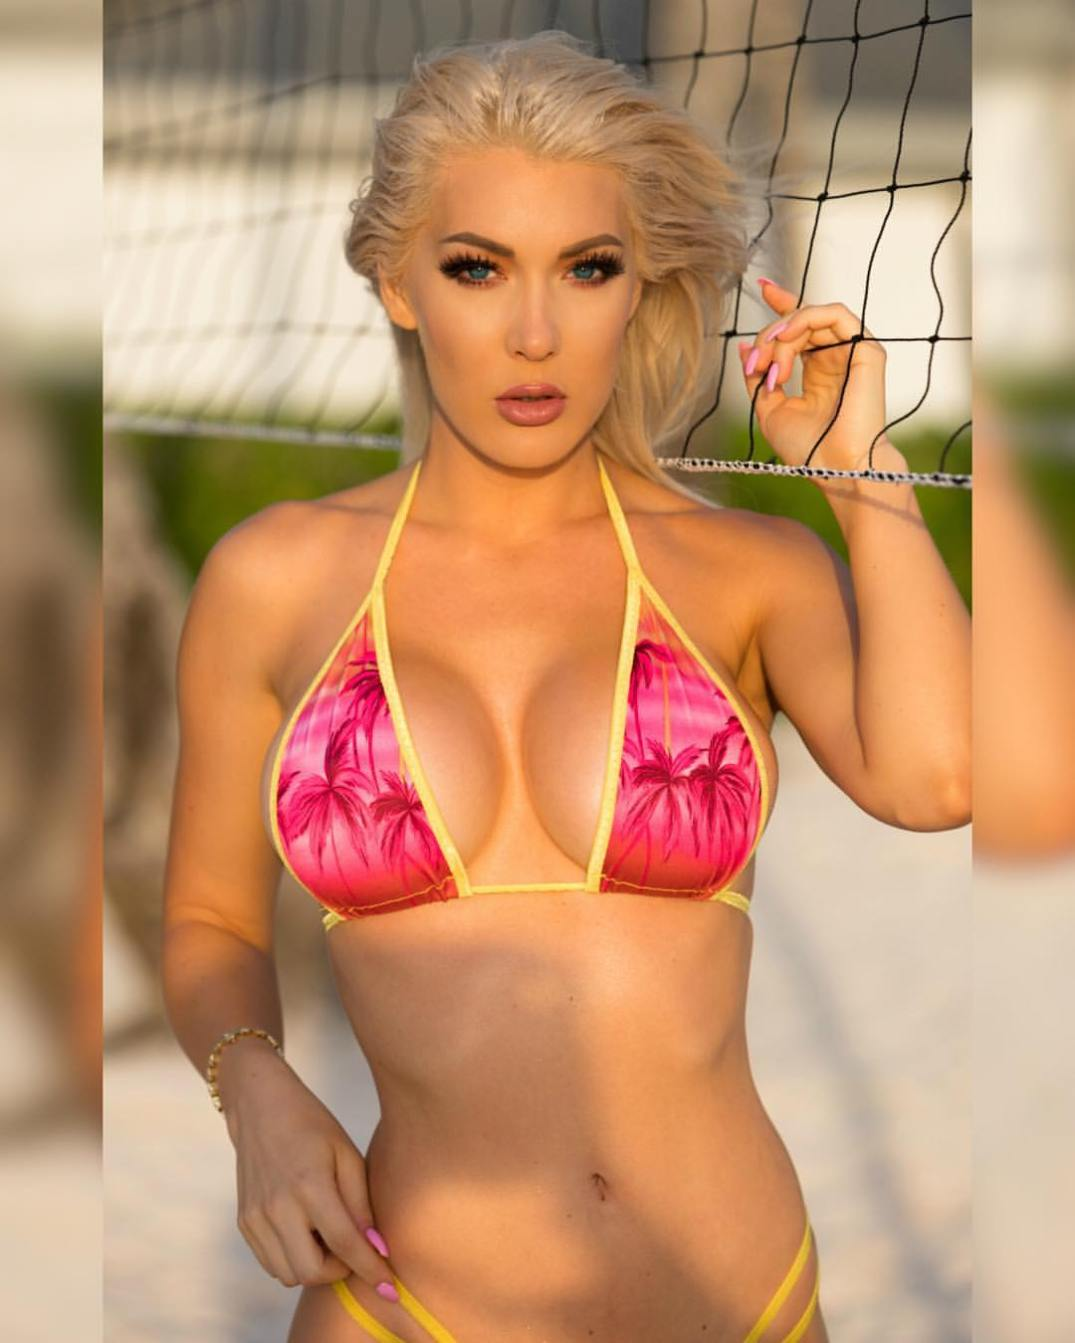 kristen hughey volley ball net